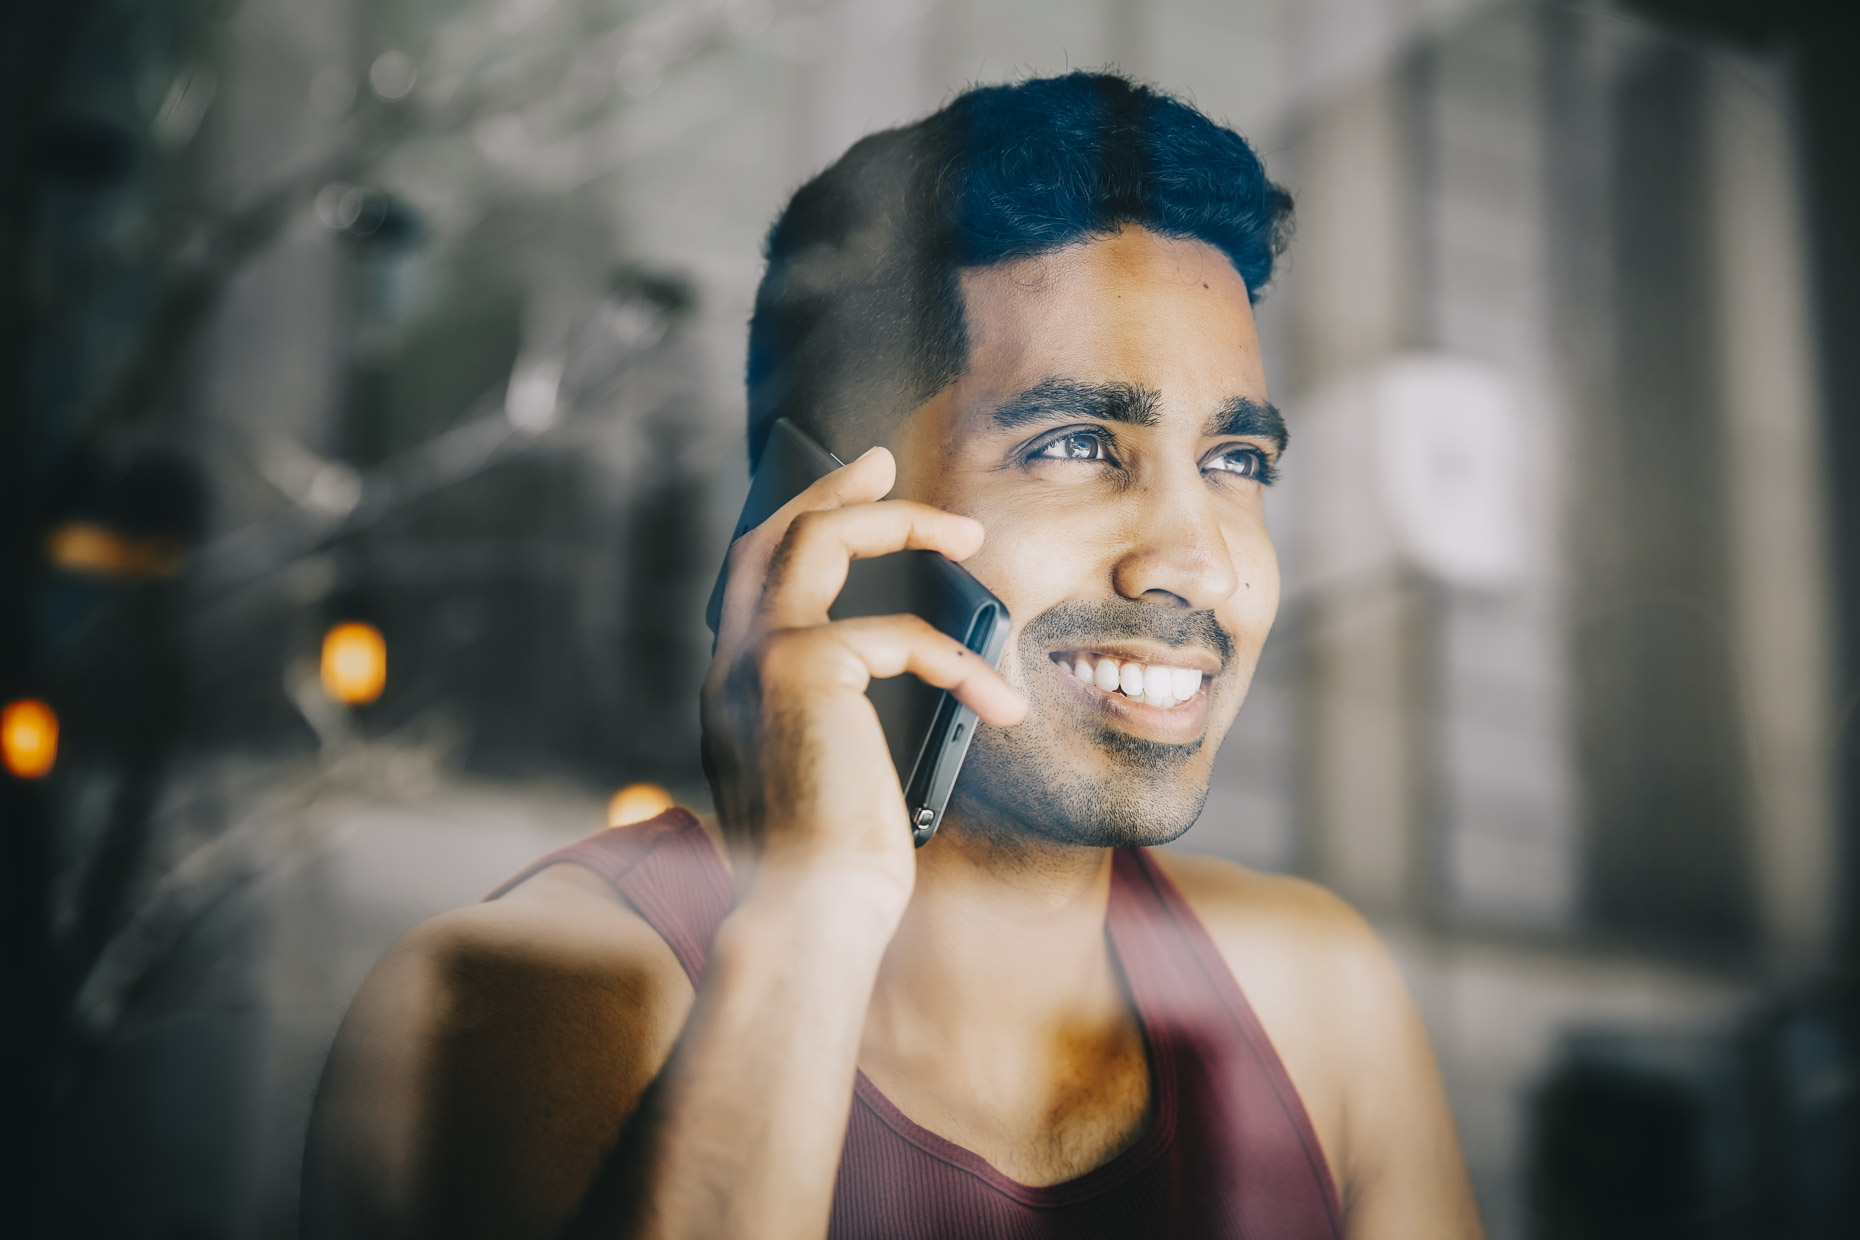 Man in maroon tank top talking on cell phone looking out window